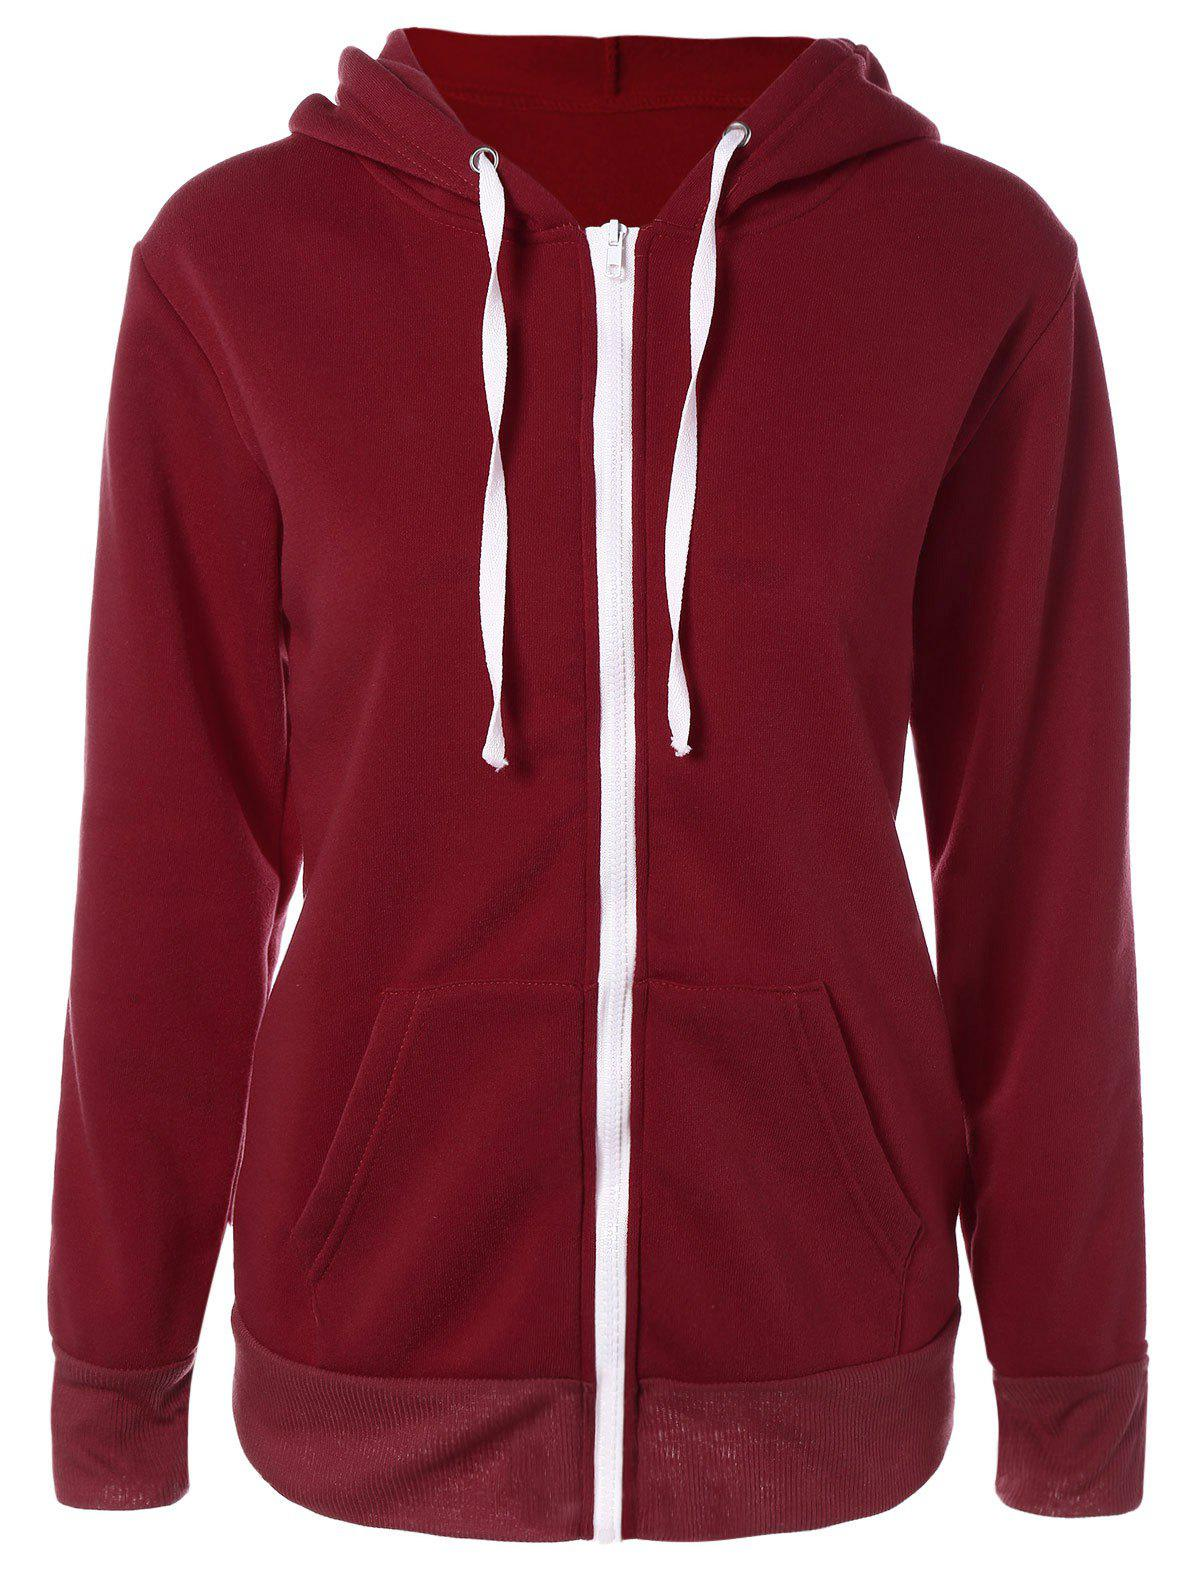 Solid Color Zip Up Hoodie polaire chaude - Rouge vineux 2XL